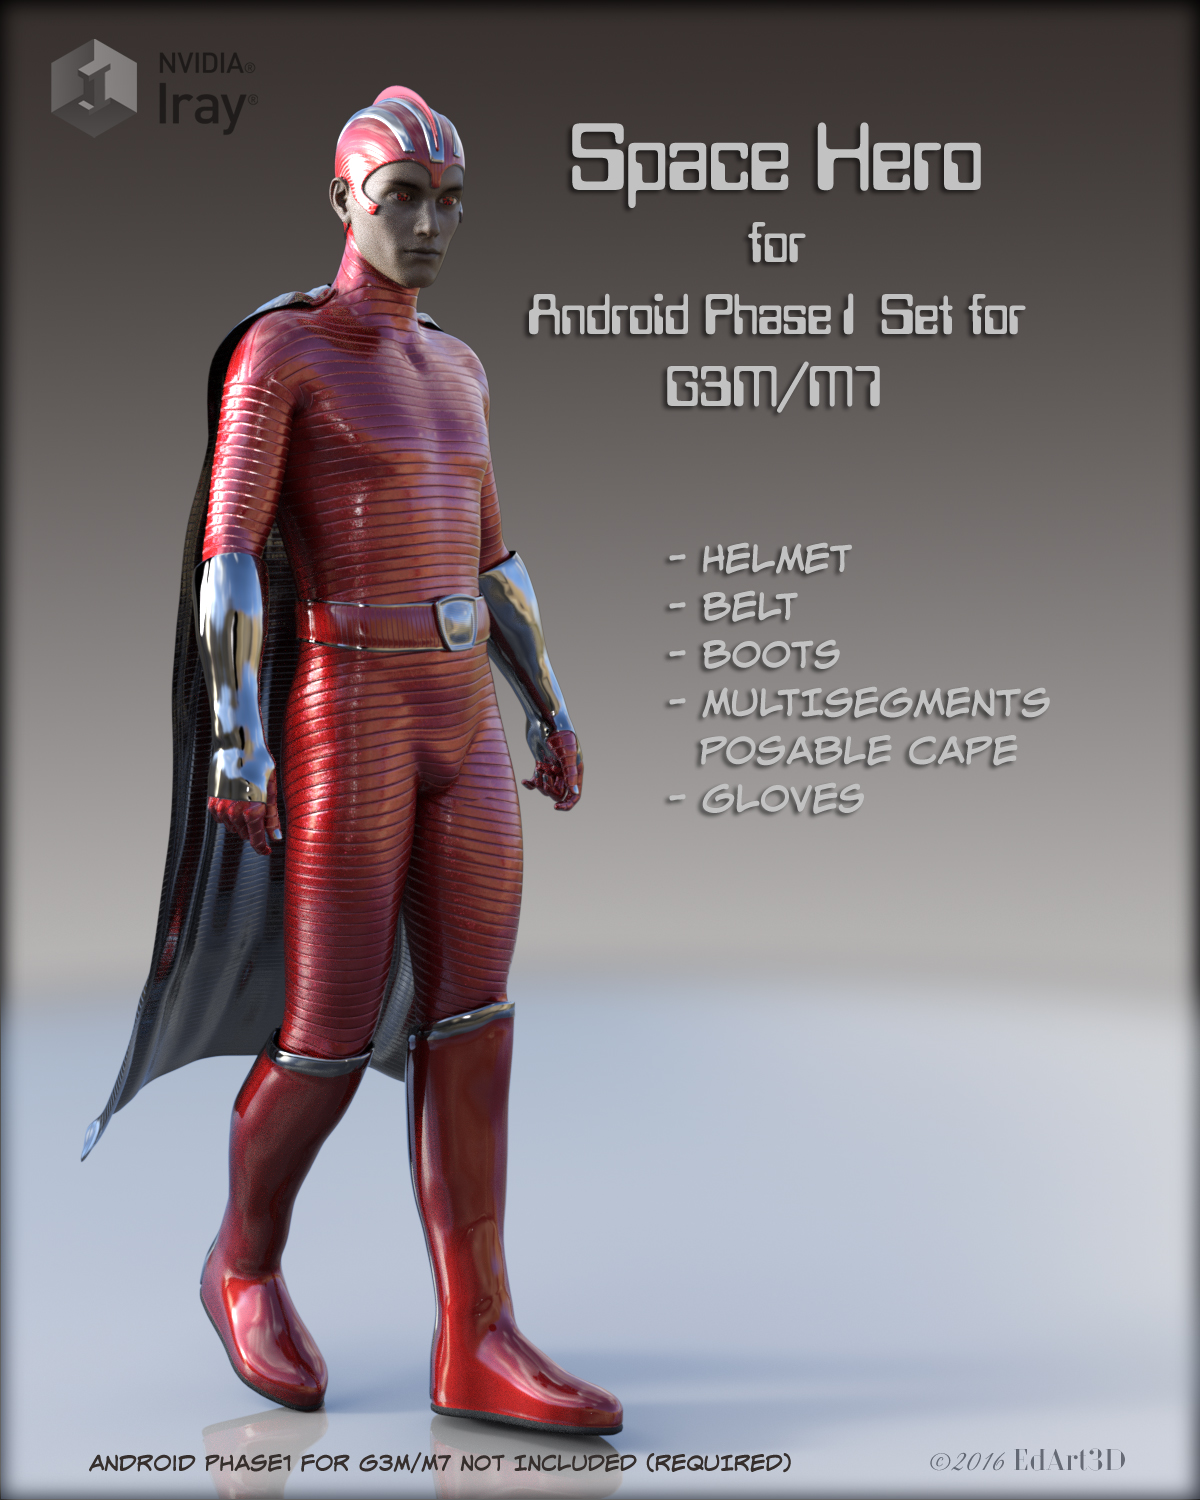 Space Hero for Android Phase1 Set for G3M/M7 3D Figure Assets